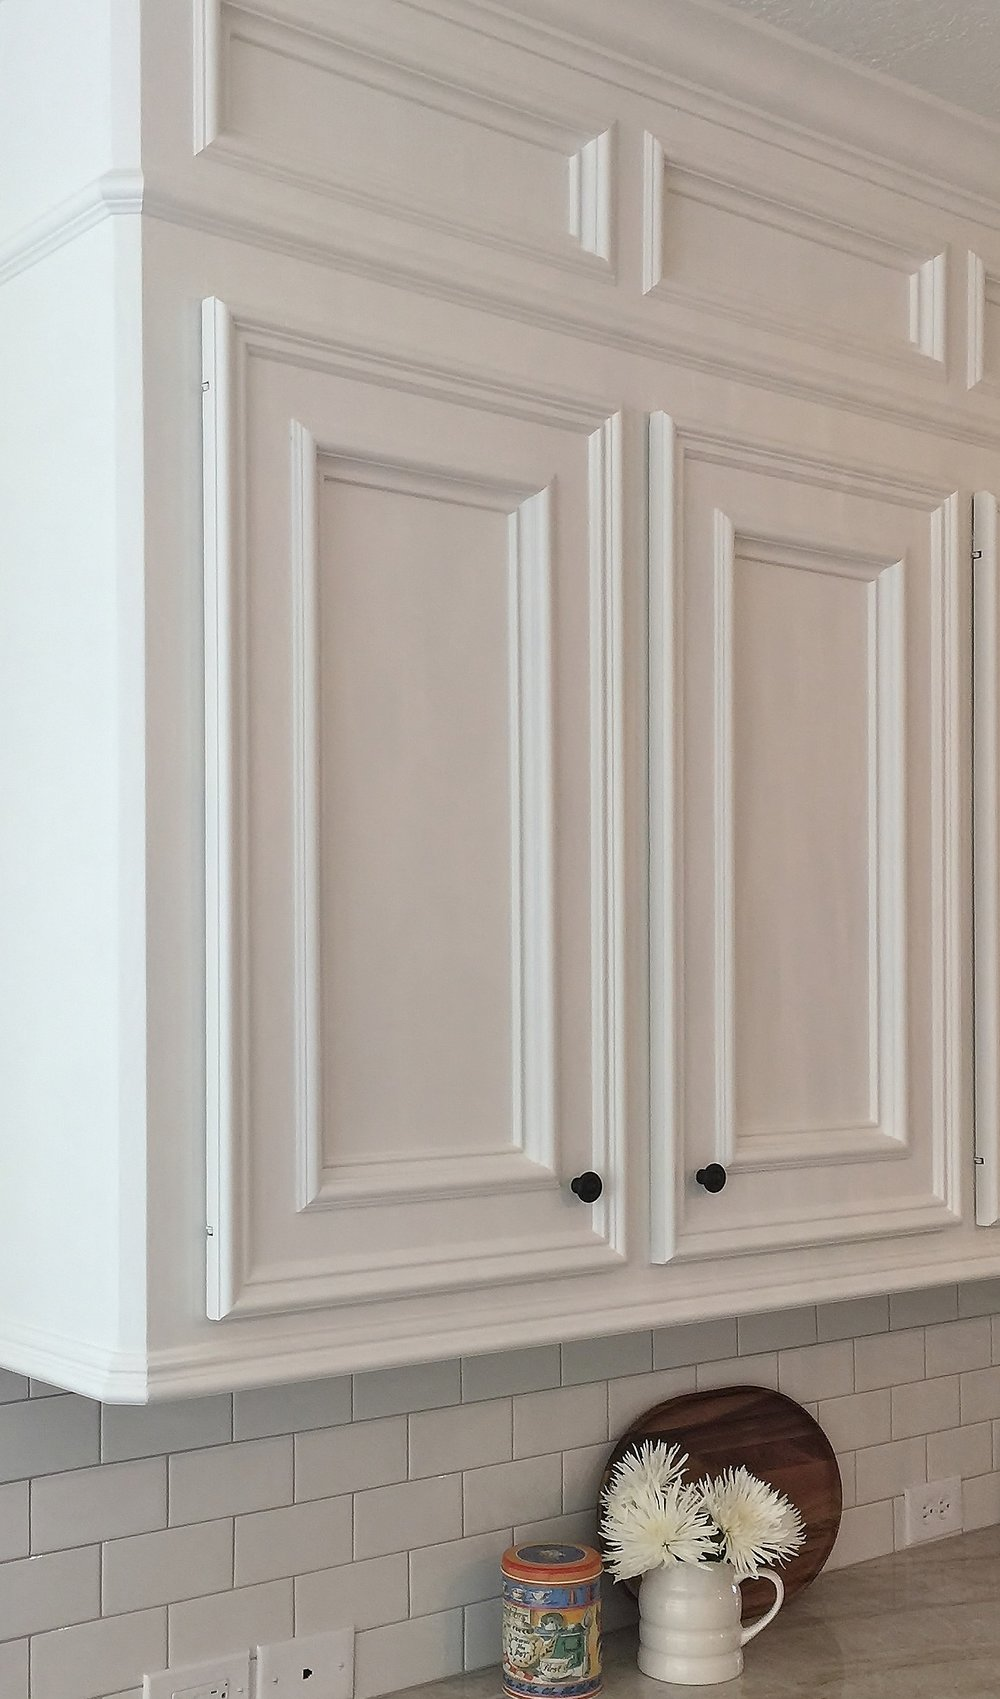 Knife hinges were used here to replace the very old, dated exposed hinges on this existing cabinetry.